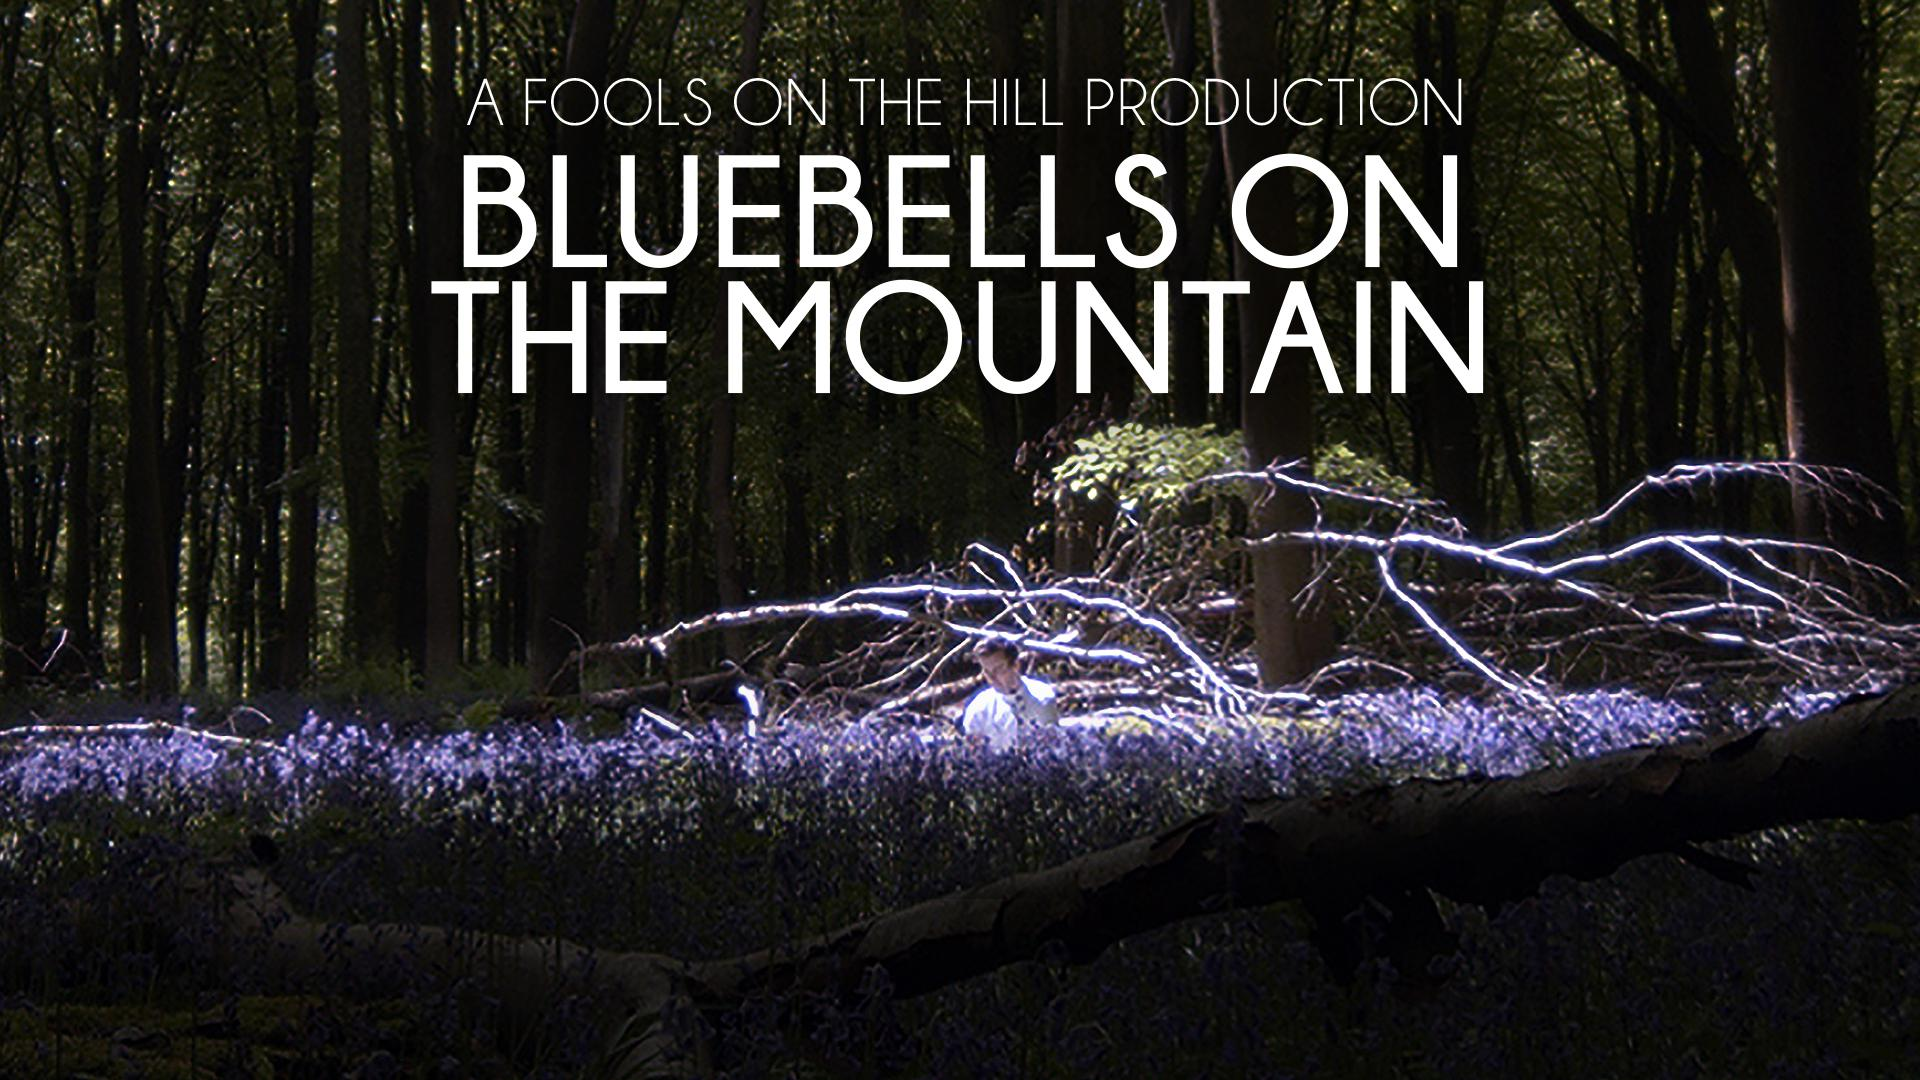 Bluebells on the Mountain